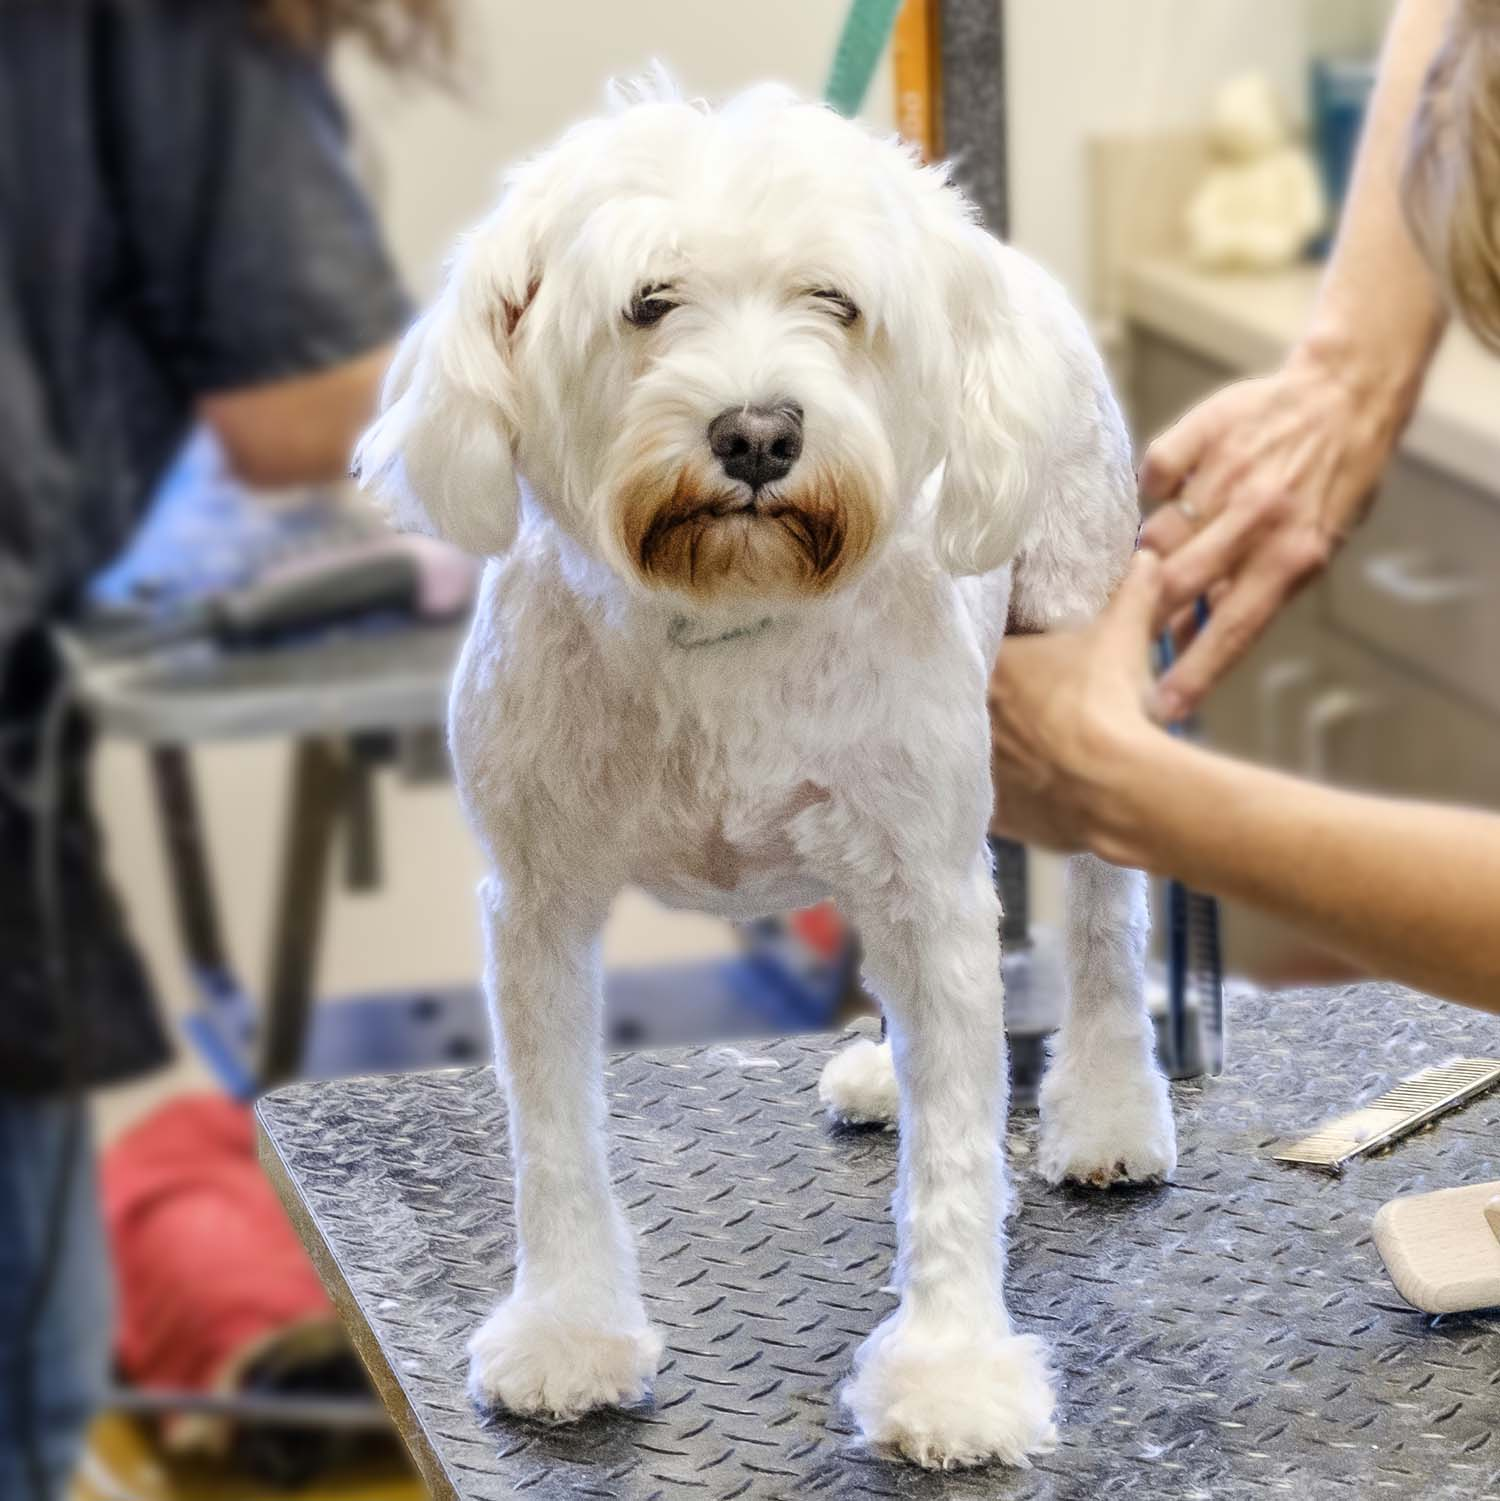 Fancy Fur is a full service groomer. Our services include full groom,mini groom, and baths, as well as walk in services, like anal gland expression, nail trims, face trims, and potty trims.